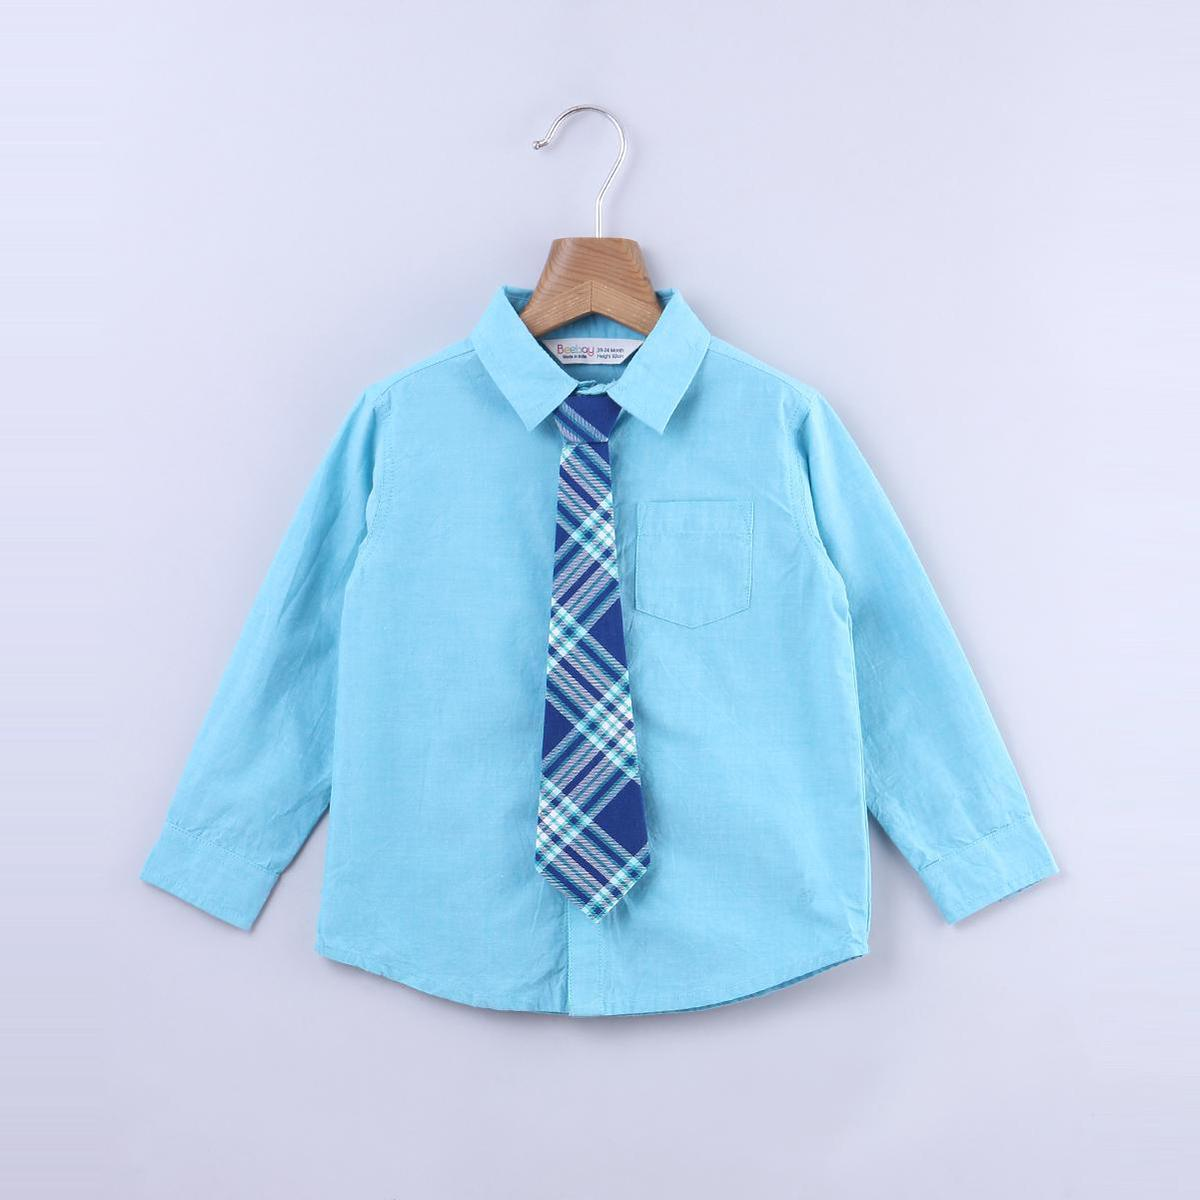 Beebay - Turquoise Blue Colored Chambray With Check Tie Cotton Shirt For Infants Boys